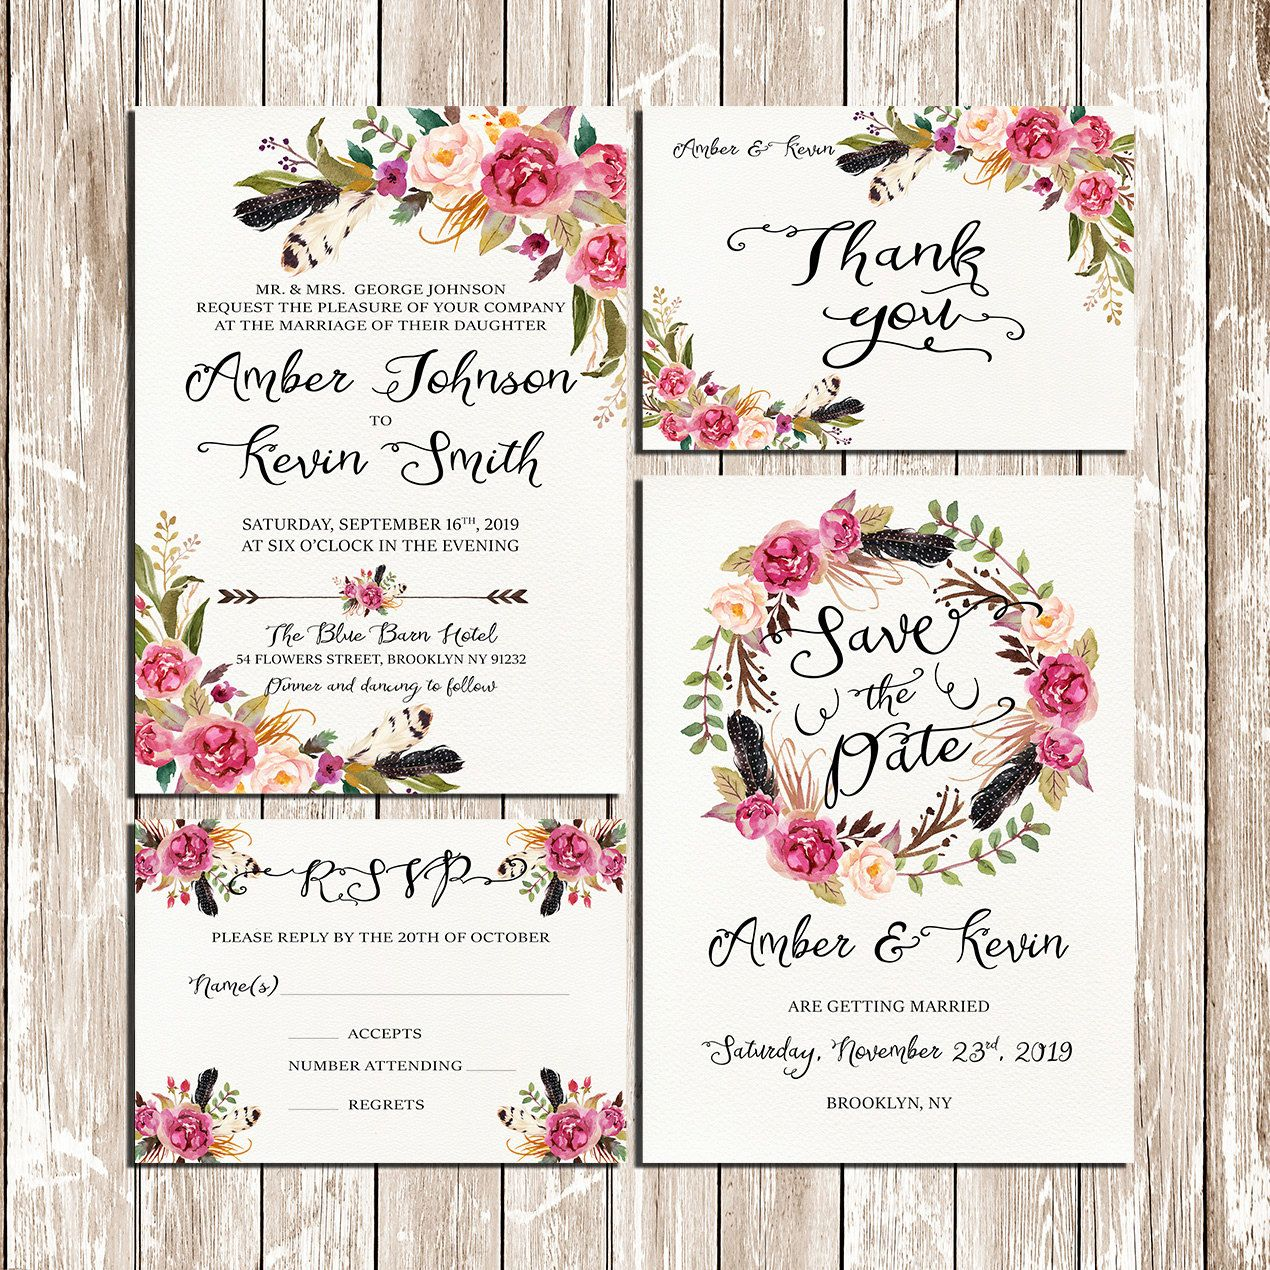 98+ Rustic Wedding Invitation Kits Diy - Wedding Invitation ...